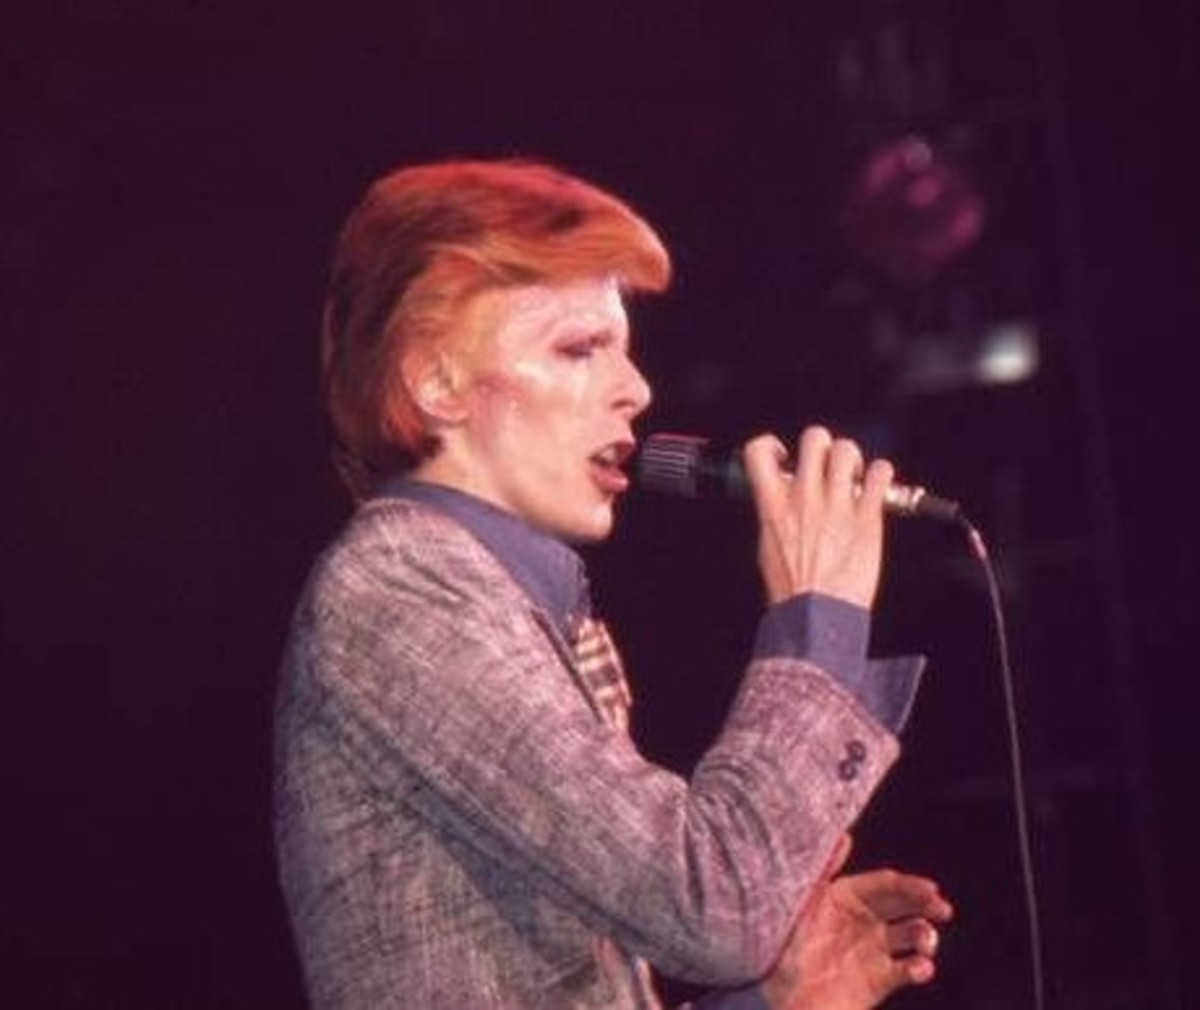 David Bowie on the Young Americans Tour, November 11, 1974.